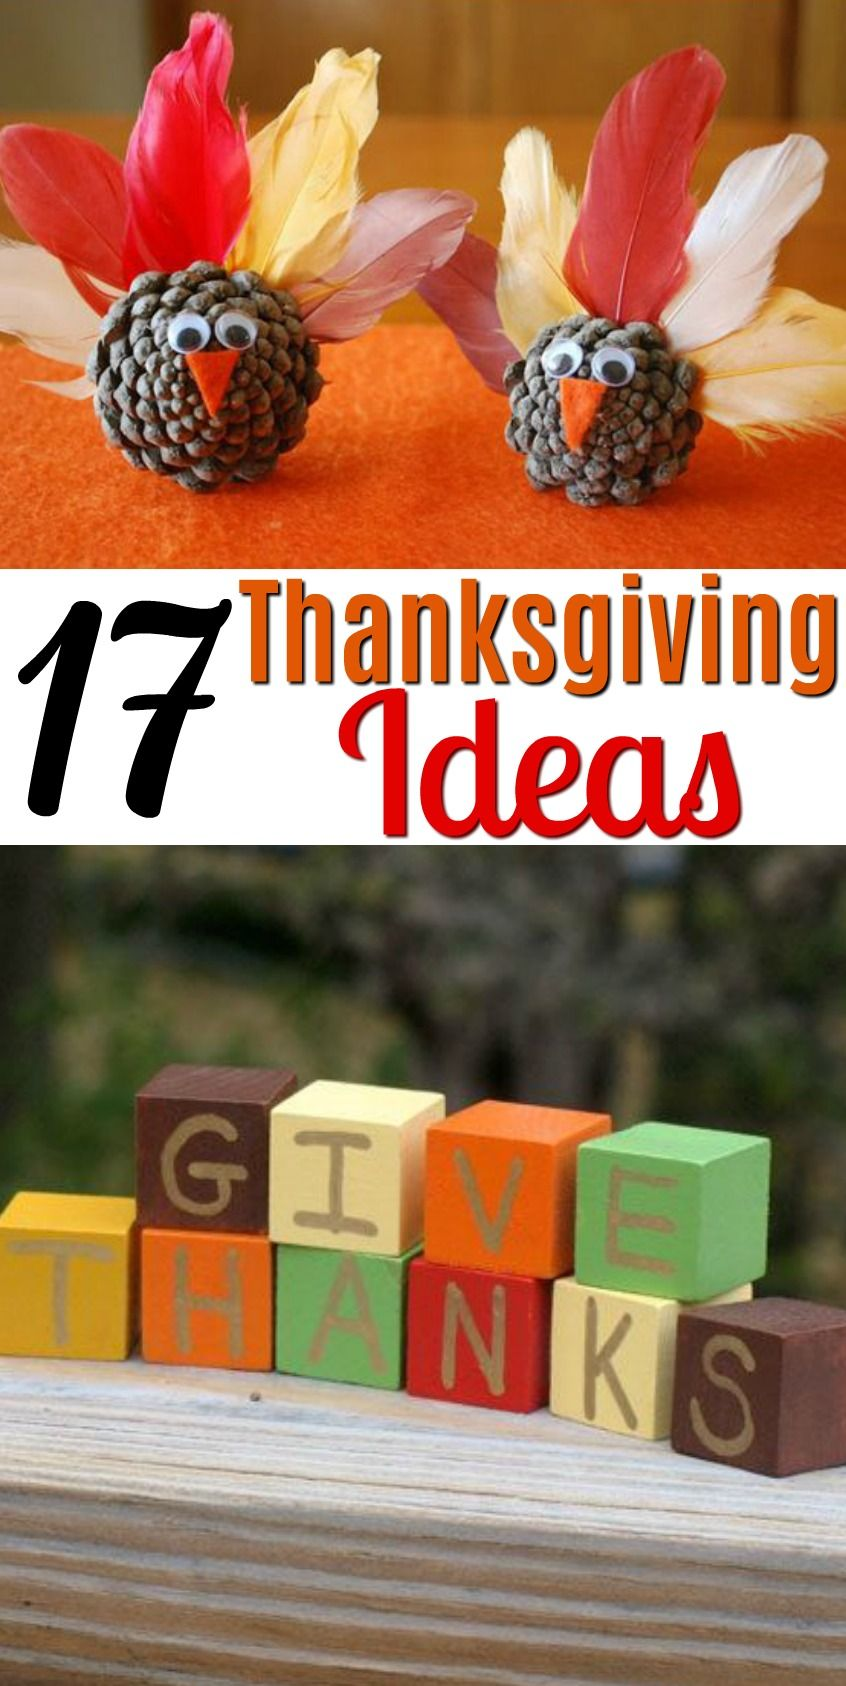 17 Thanksgiving Diy Ideas A Little Craft In Your Day Thanksgiving Crafts Diy Thanksgiving Decorations Diy Thanksgiving Crafts Decorations